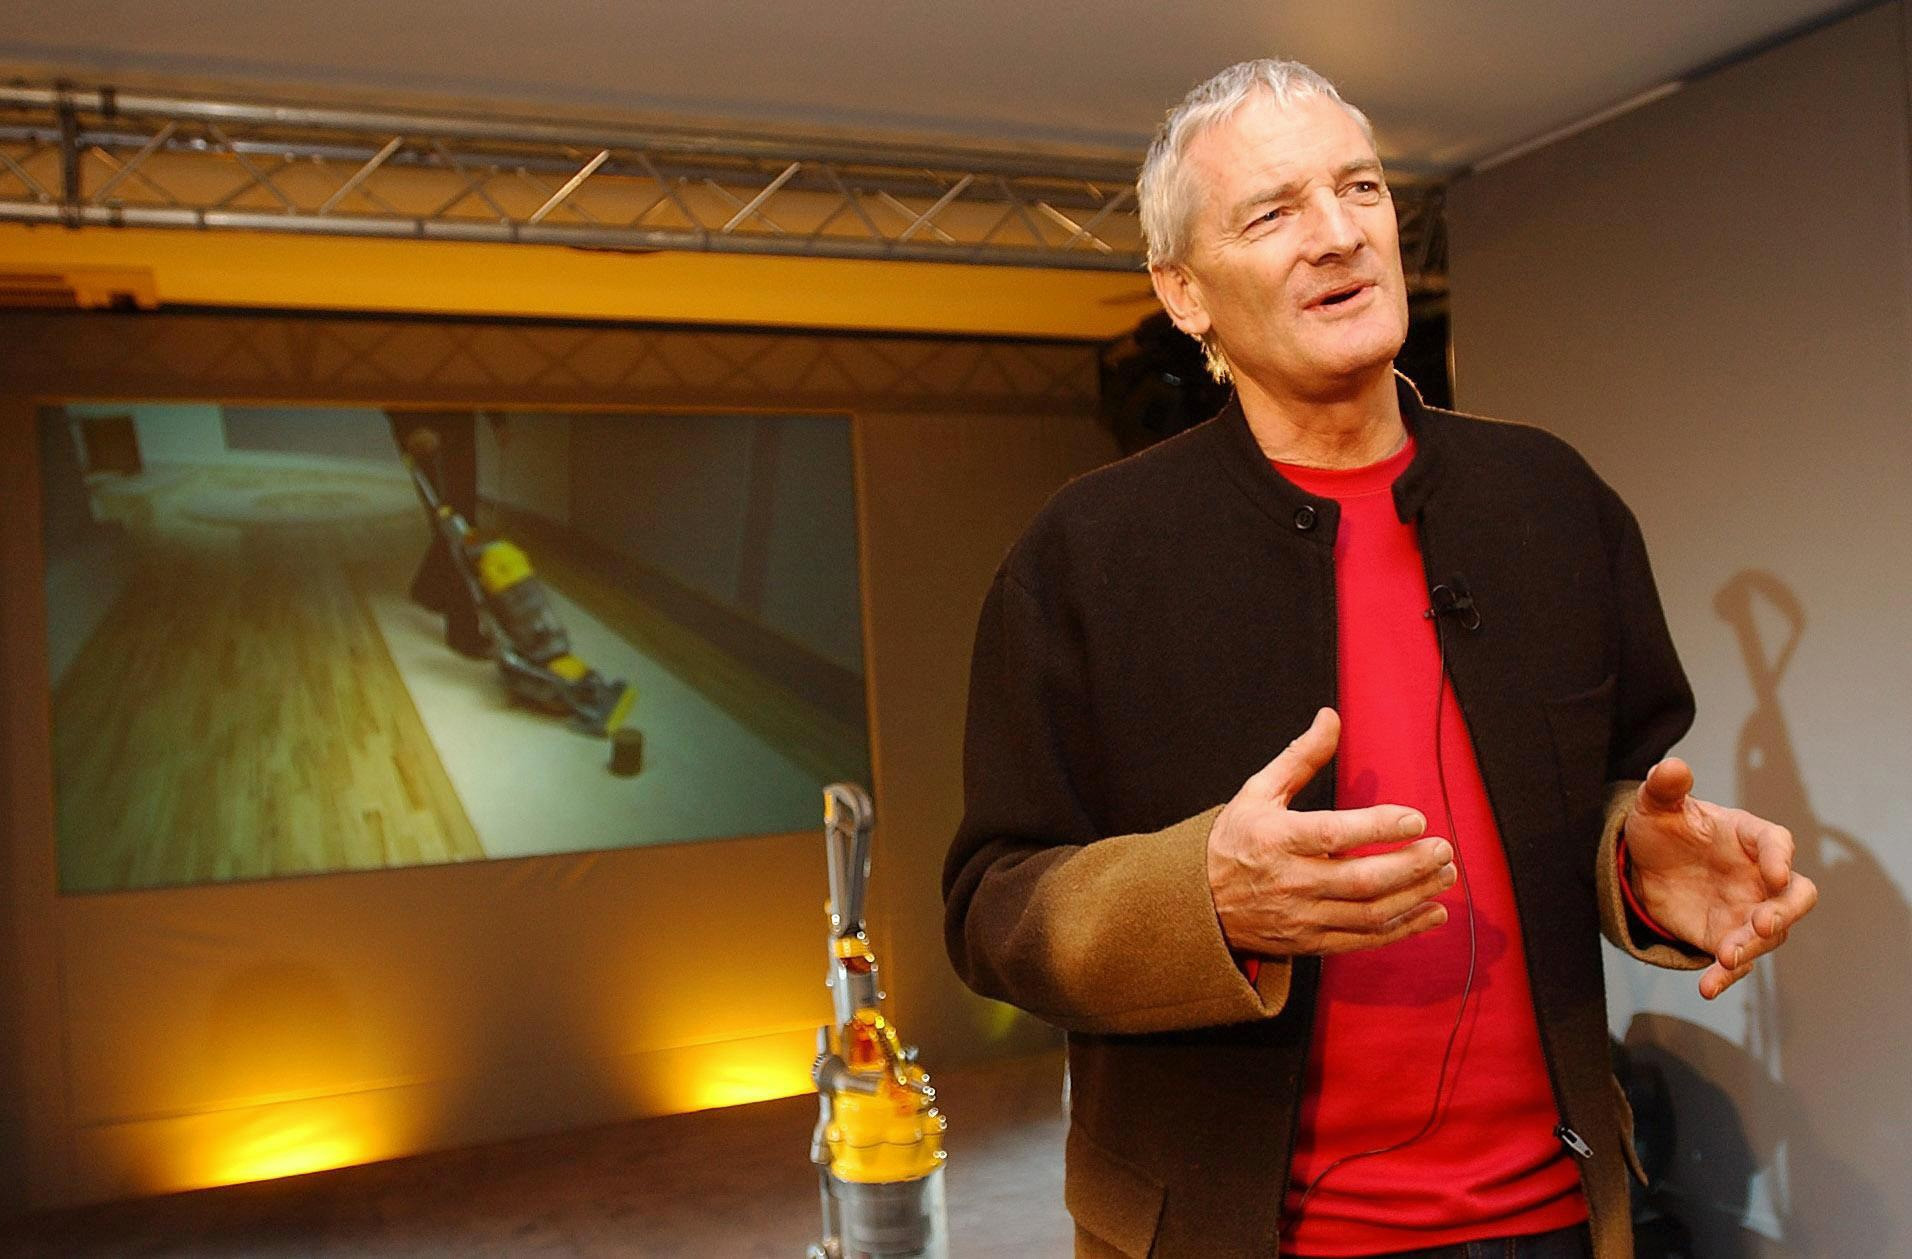 British inventor James Dyson speaks about his new Dyson Ball vacuum cleaner (on screen). The company has invented a machine with a single ball-shaped wheel designed to make it far easier to manoeuvre round furniture and other obstacles.